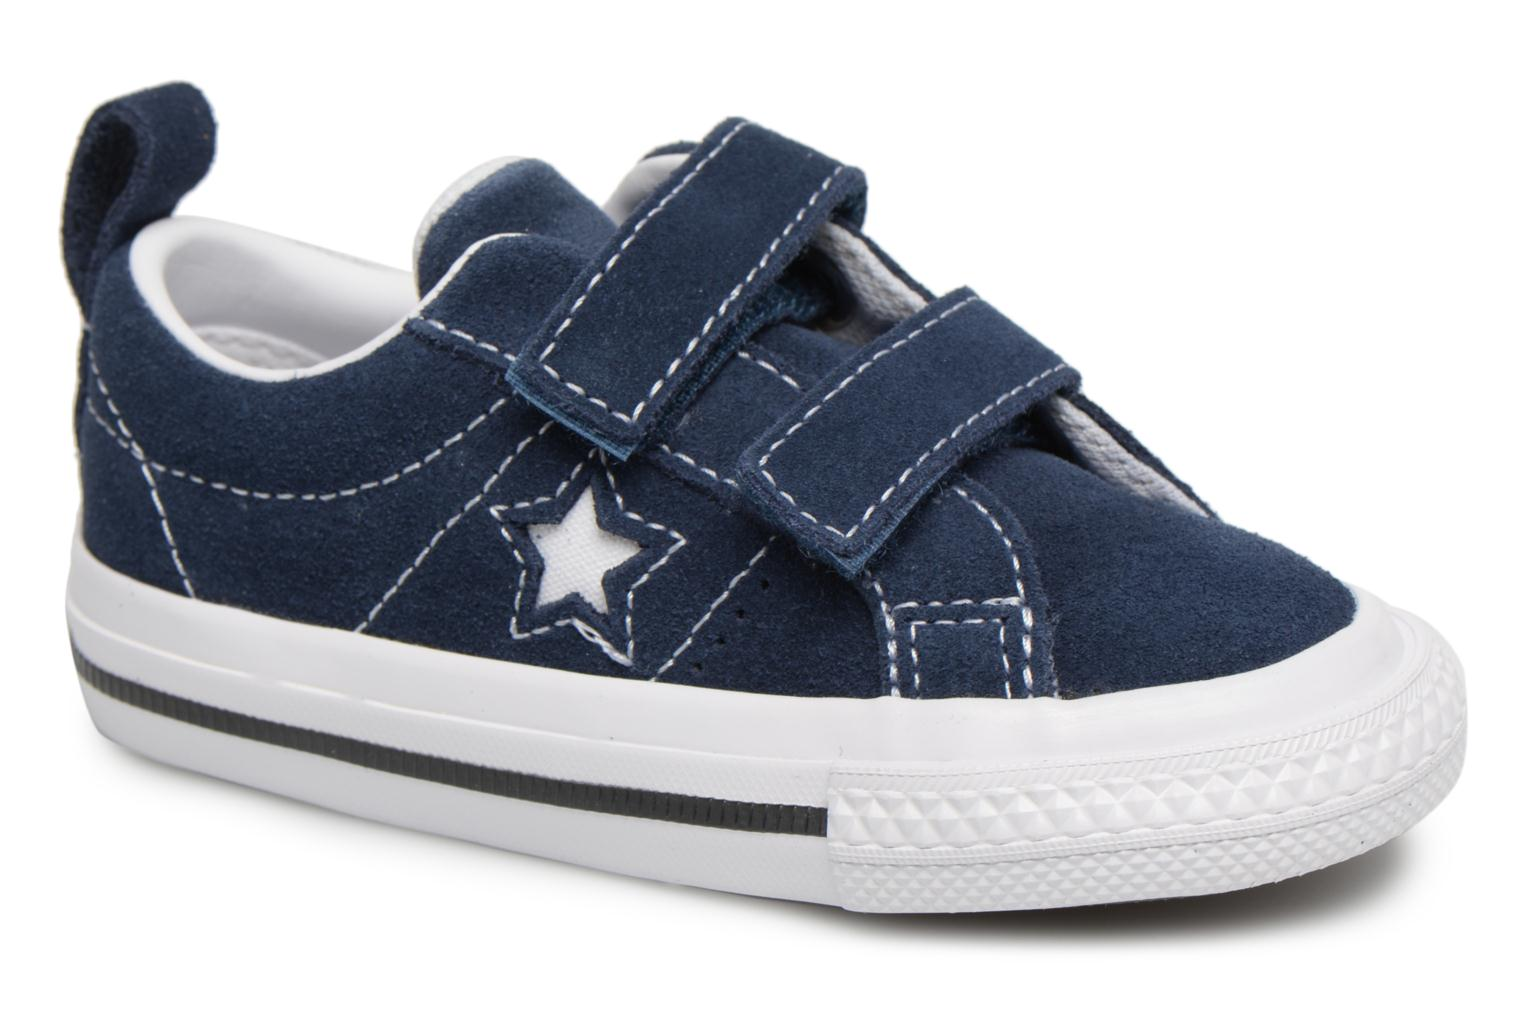 Navy/White/Black Converse Converse One Star Suede 2V Ox (Bleu)